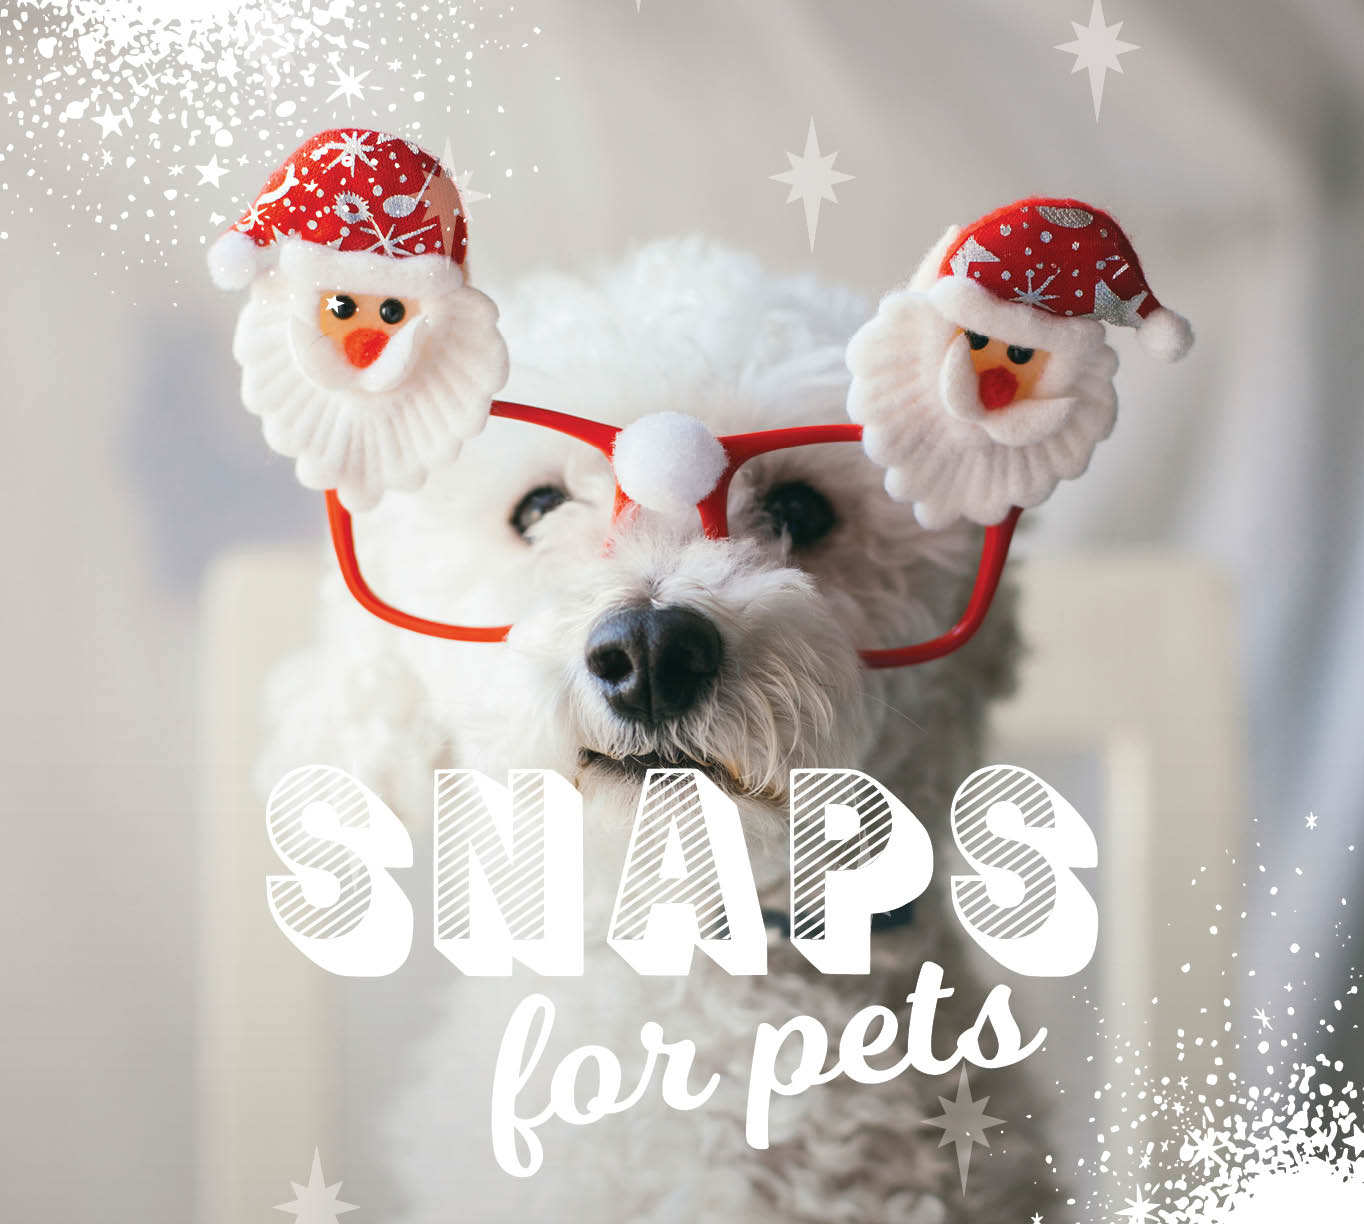 CH4806_Xmas 2019_Web Tiles_Snaps for pets_628x612px